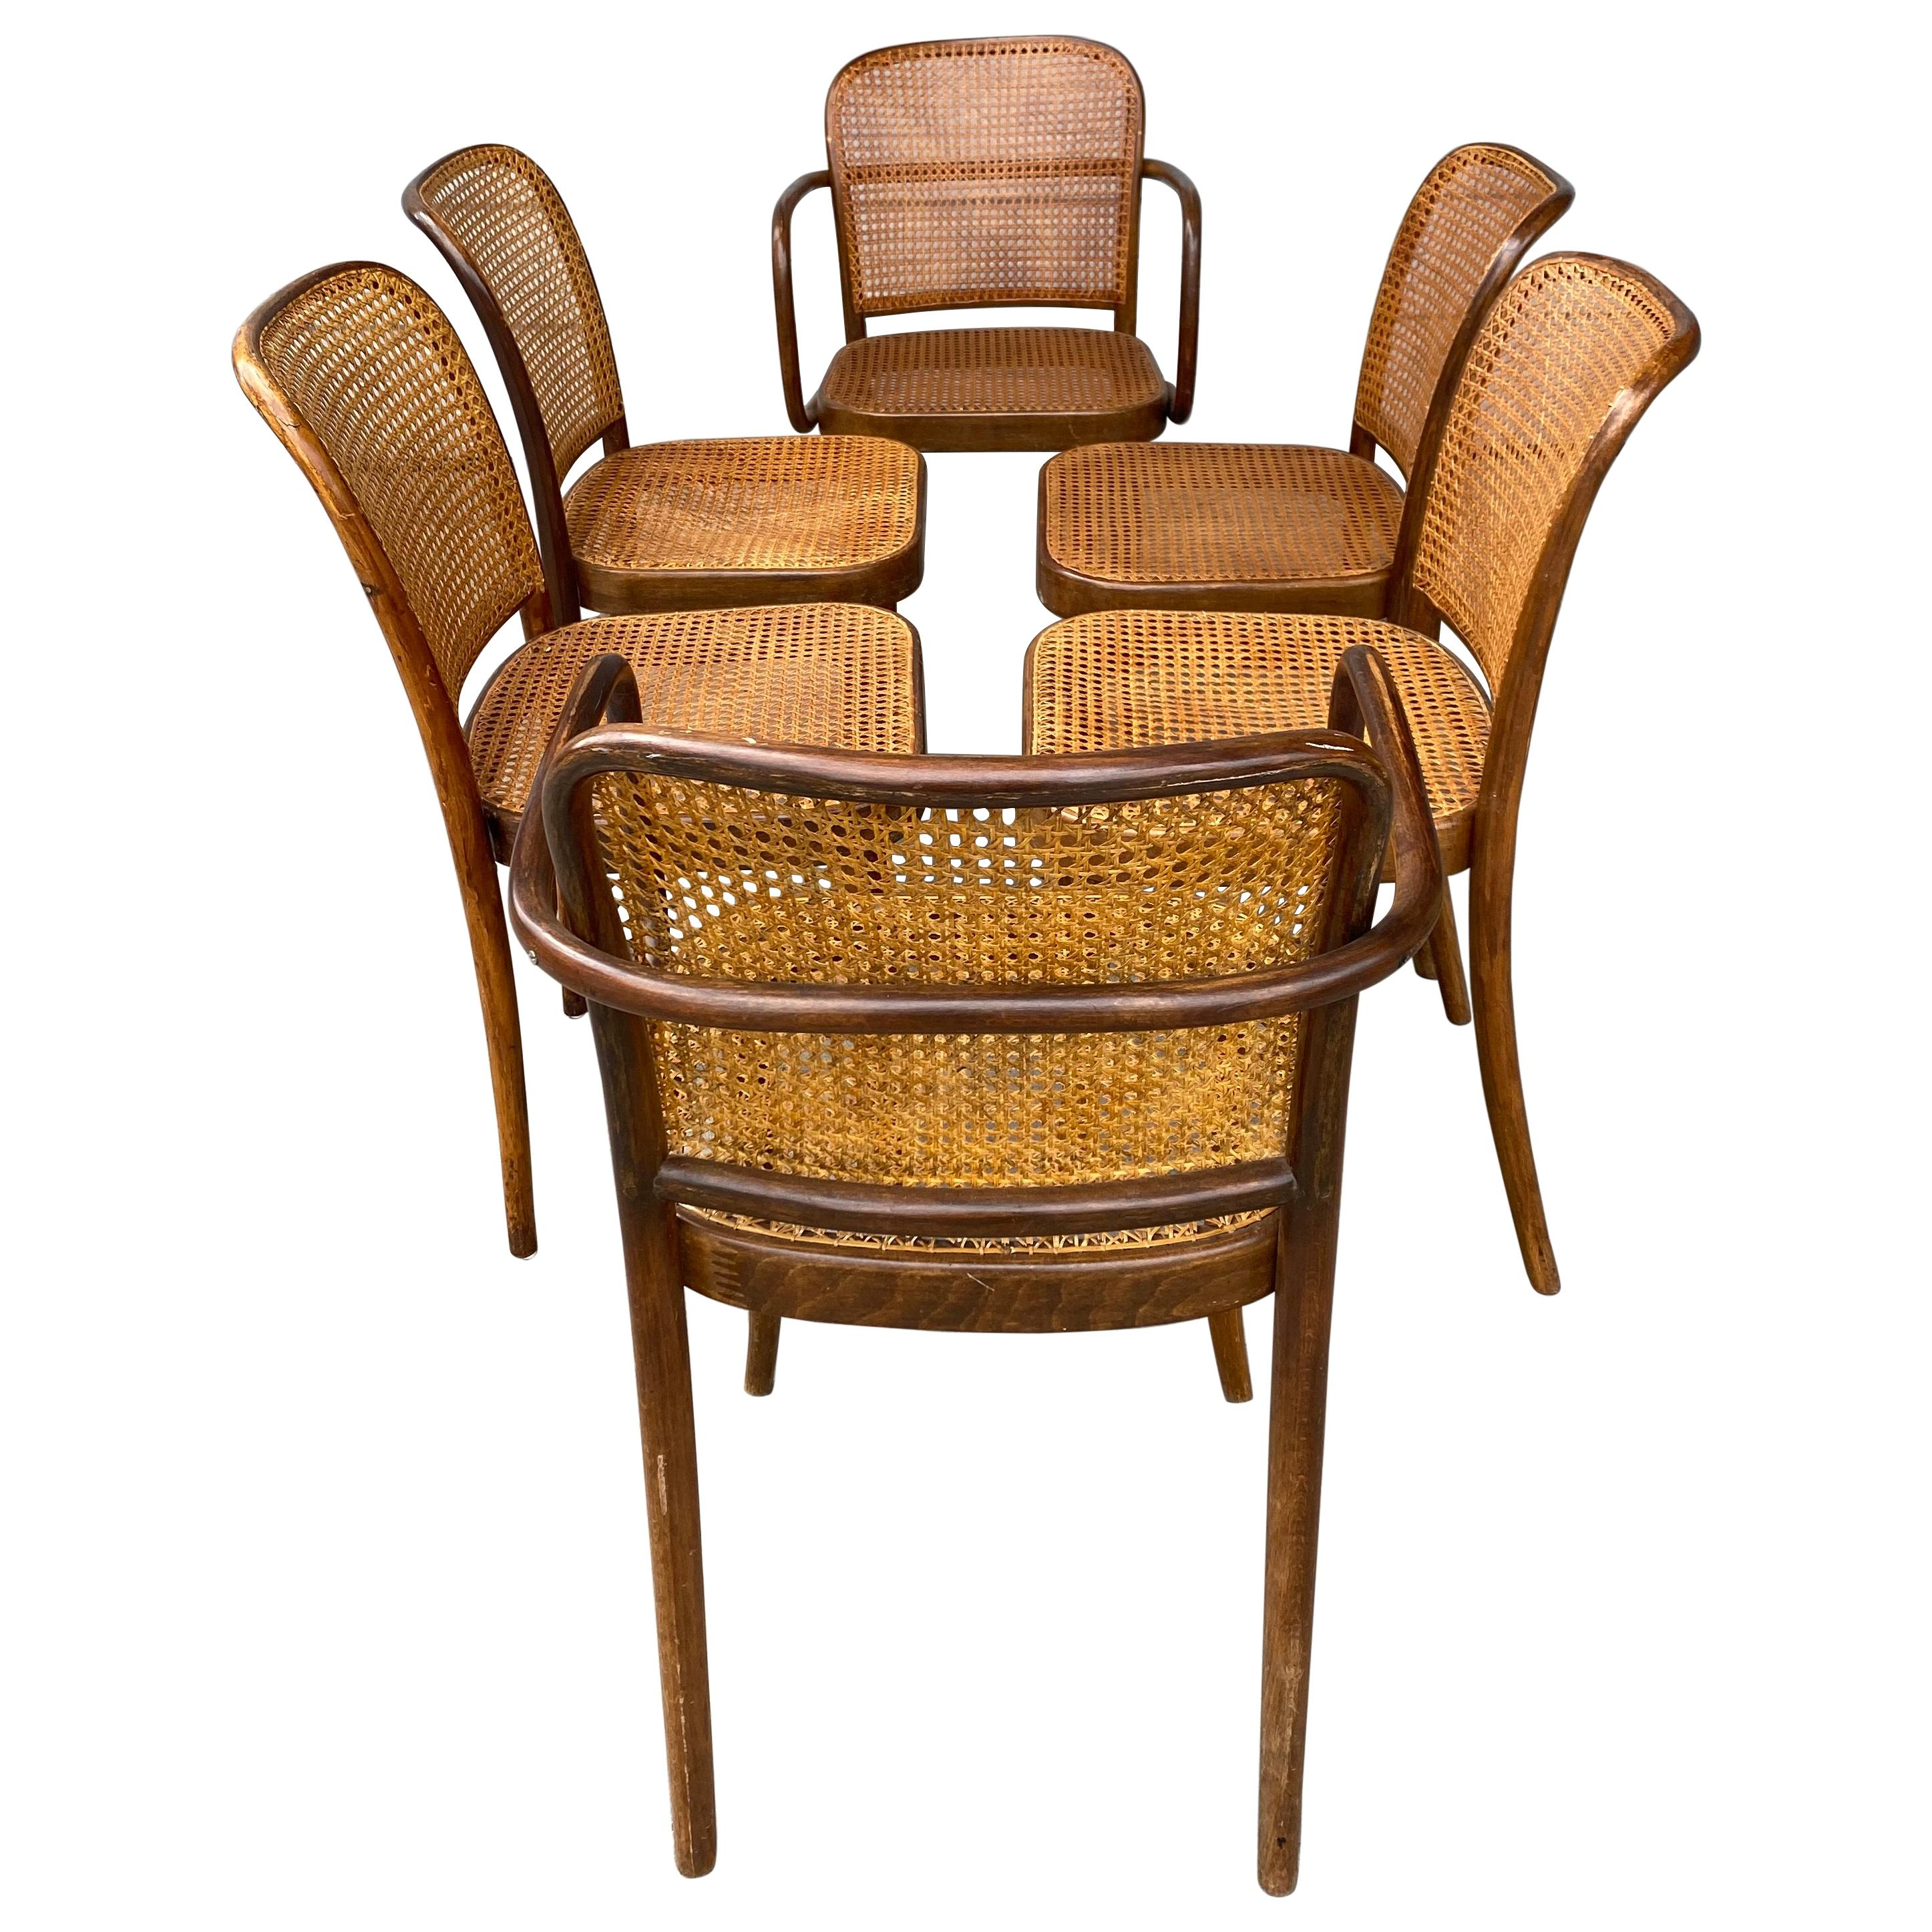 Classic Set 6 Bauhaus Wood and Cane Dining Chairs by Josef Hoffmann for Stendig